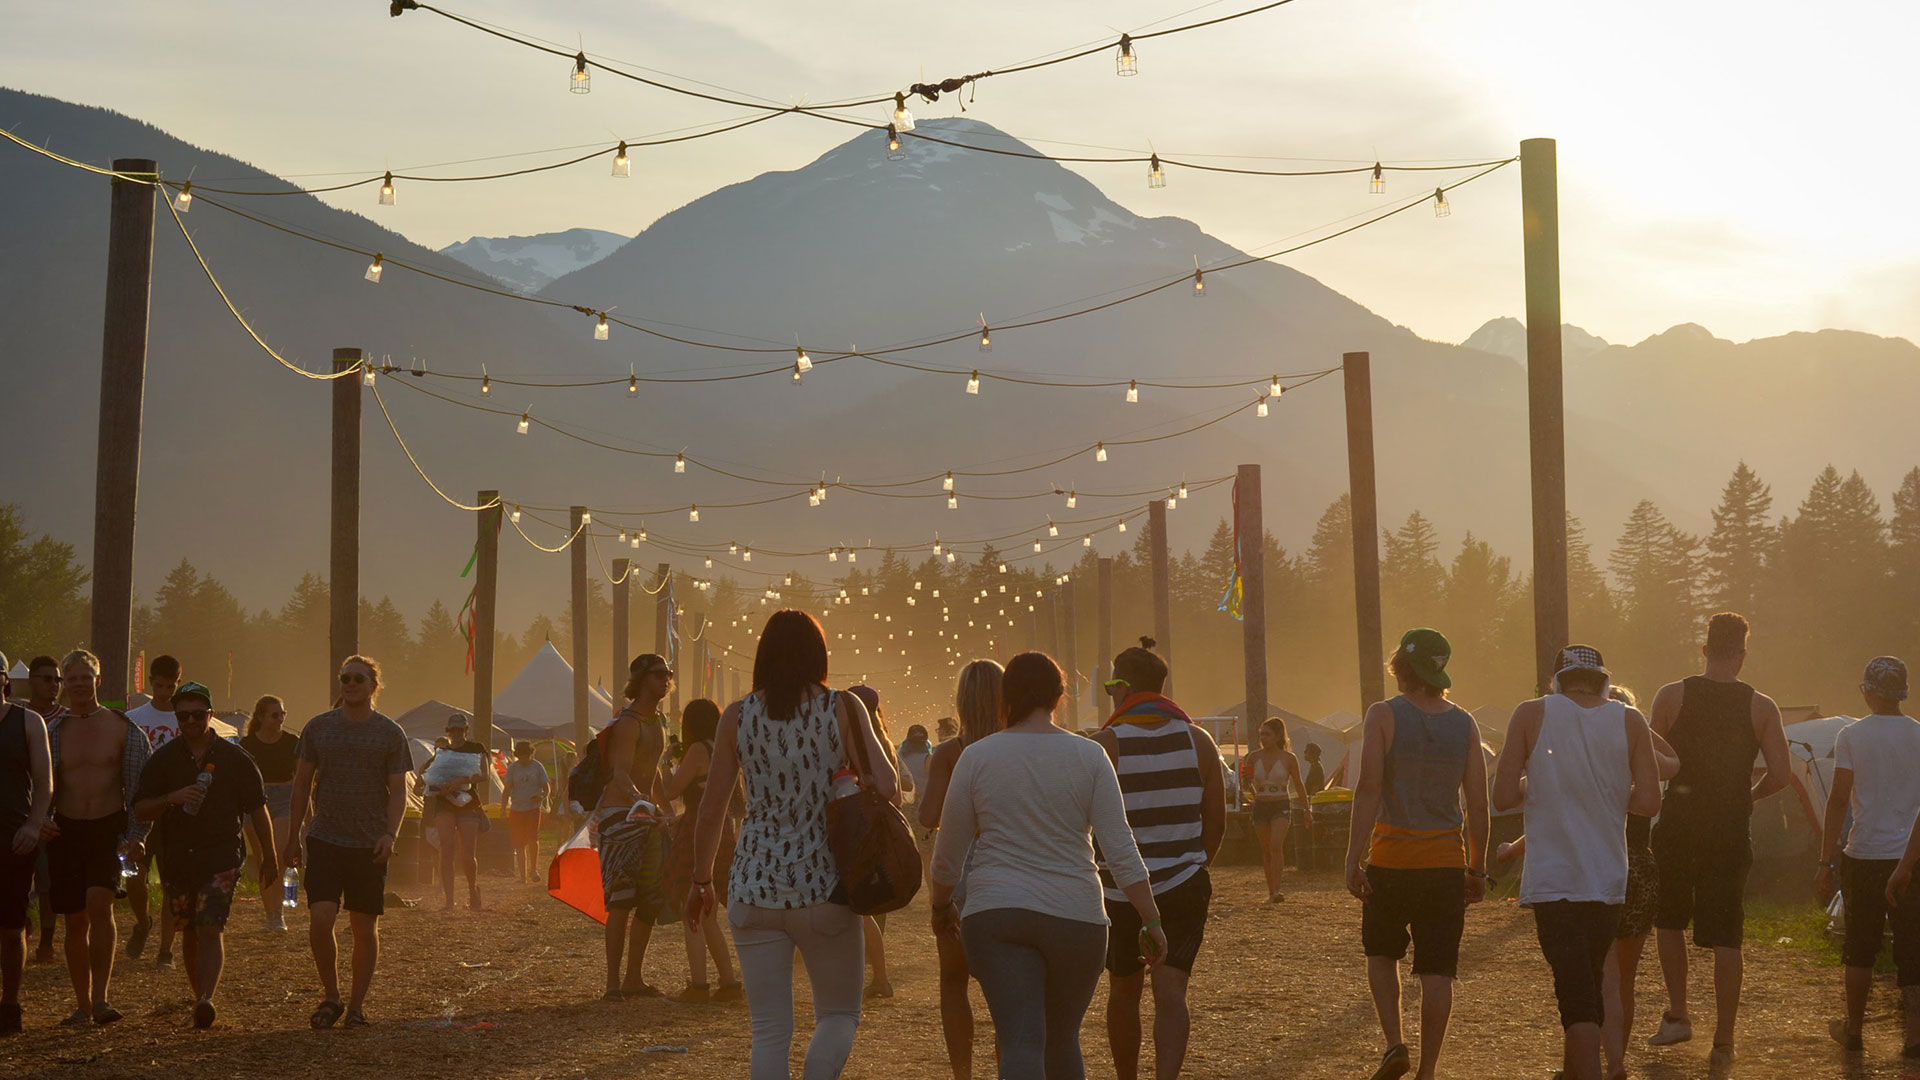 festival in pemberton with mount currie in the background